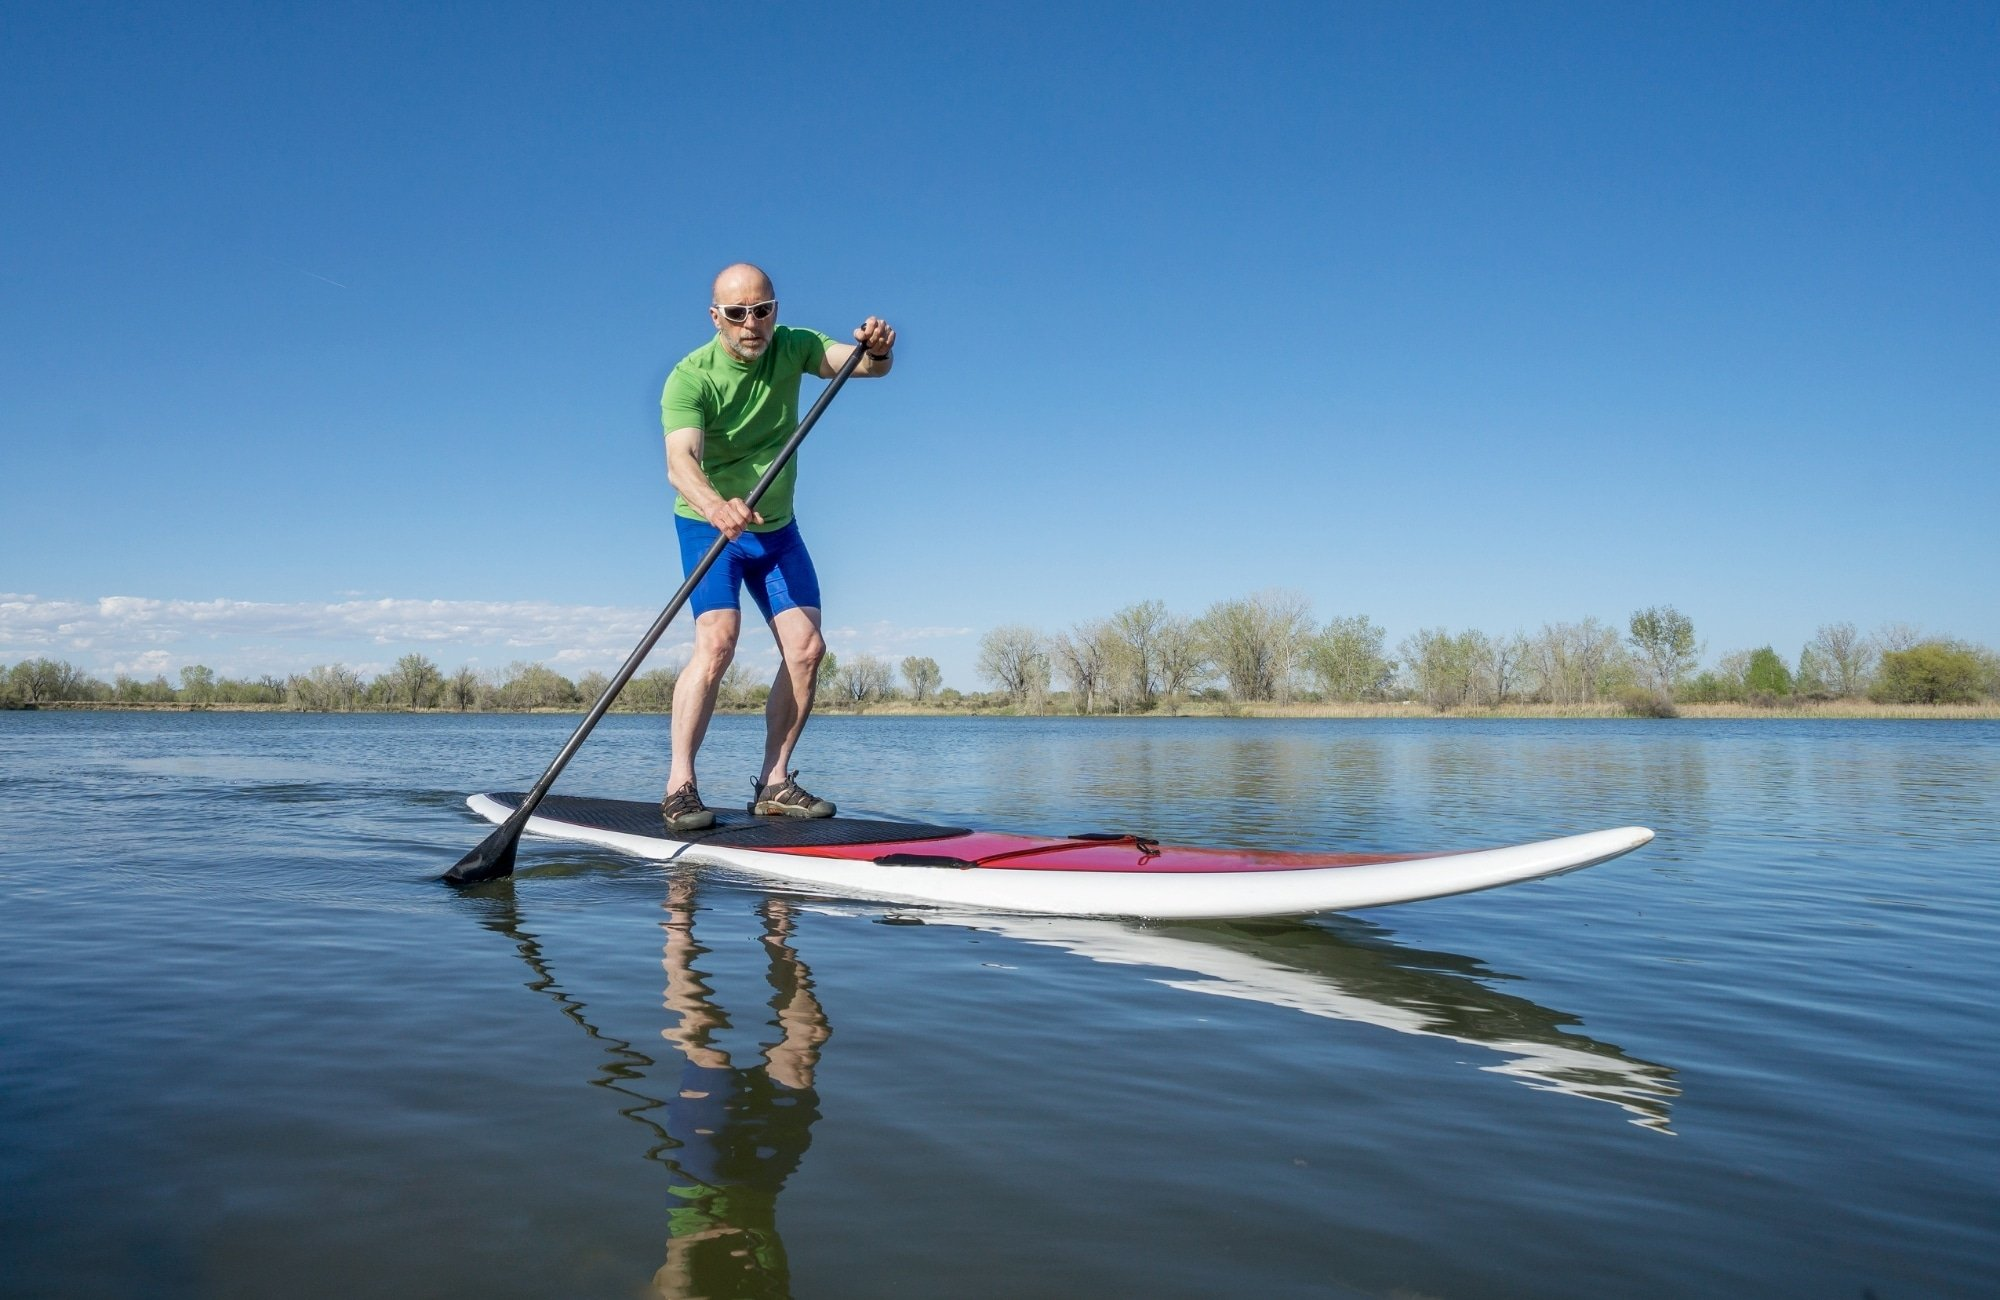 Enjoy some Stand-Up-Paddleboarding (SUP)